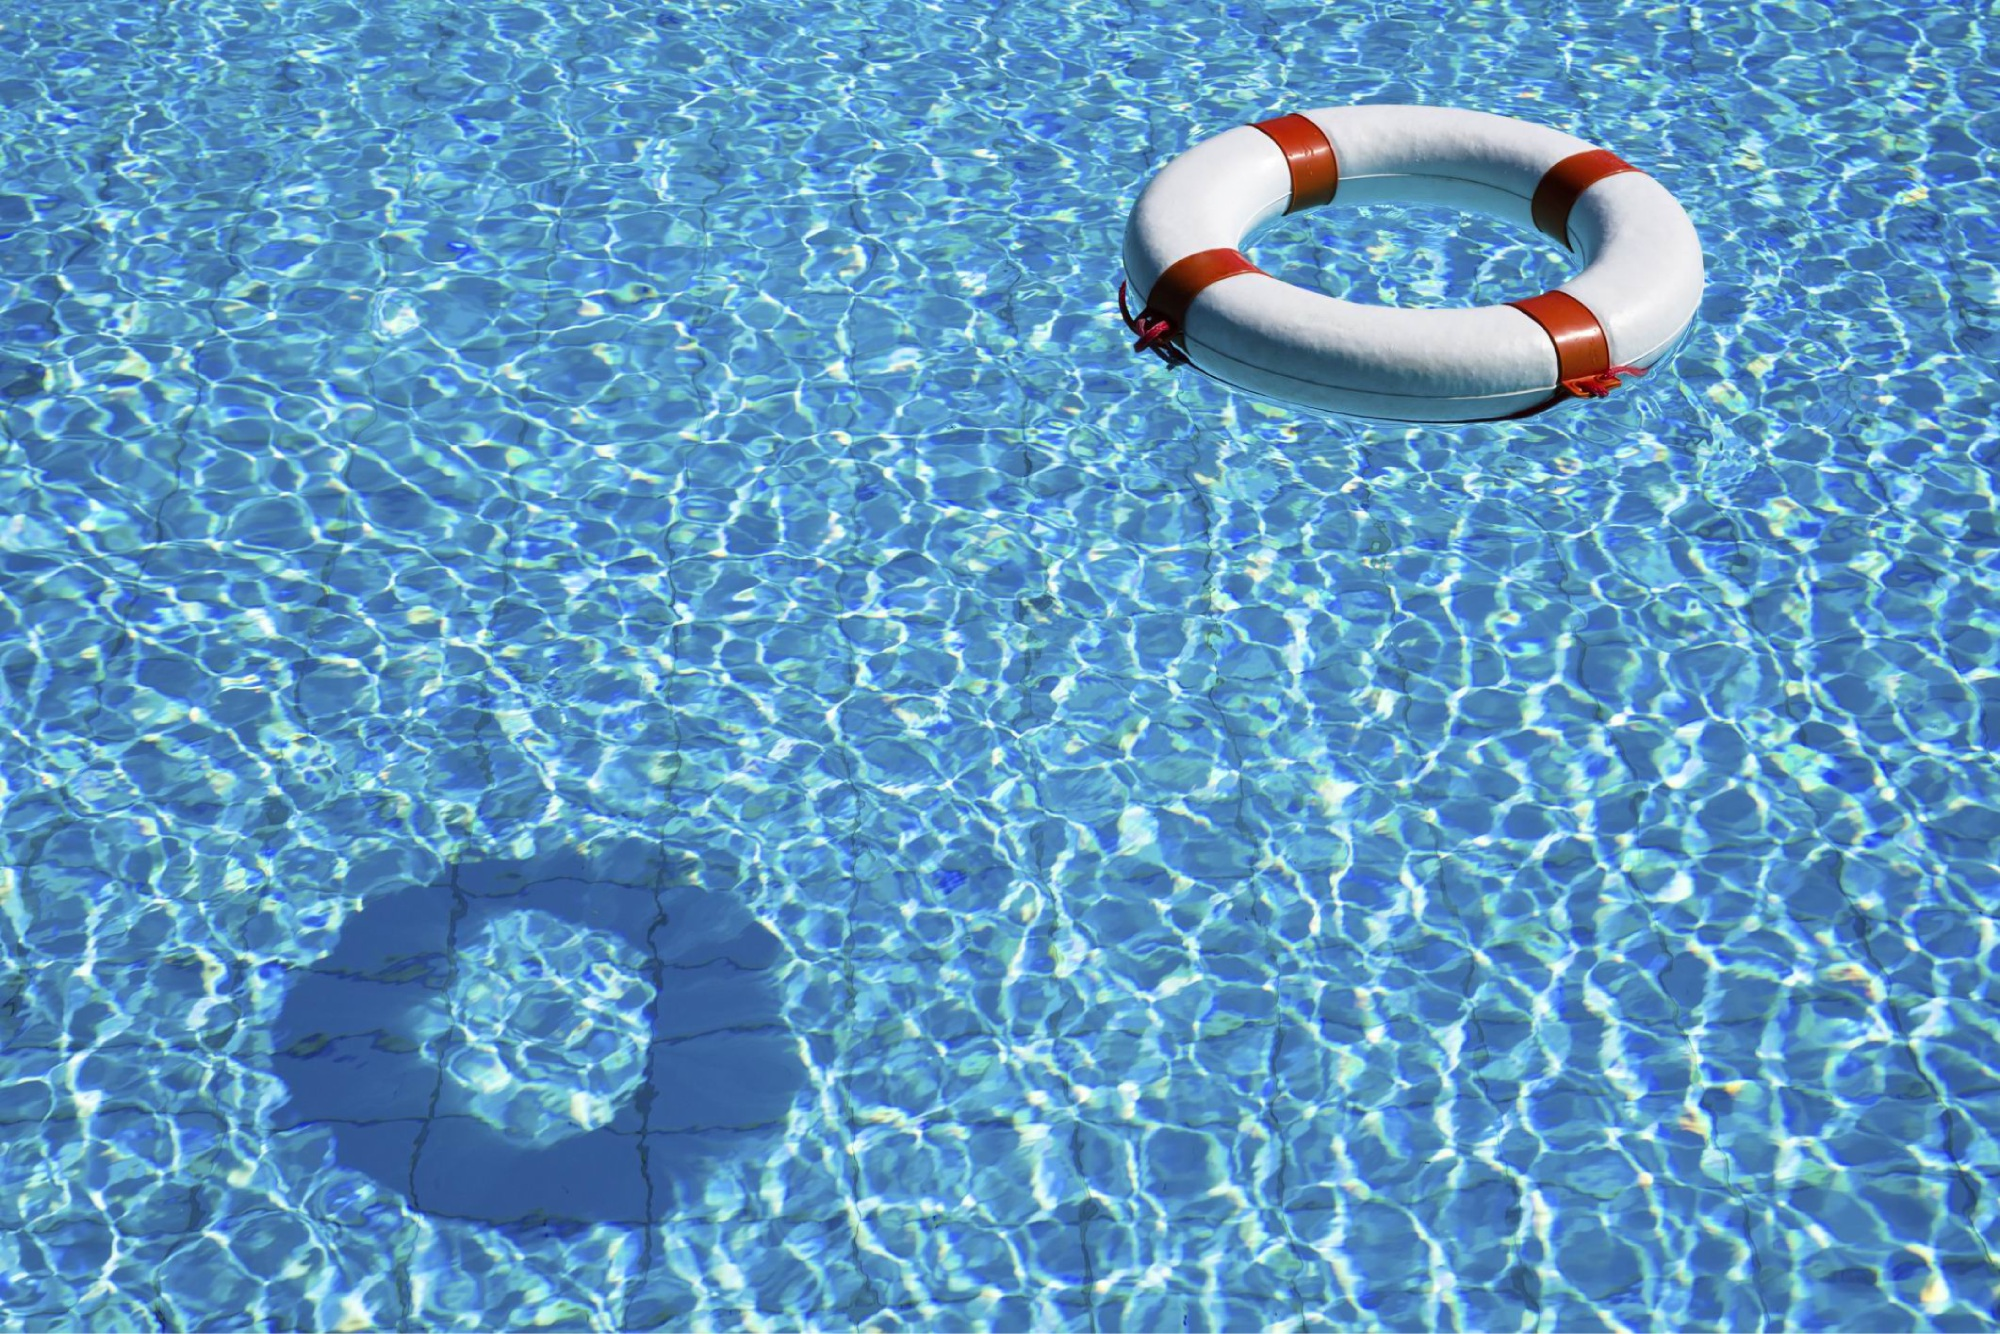 City of Joondalup reminds residents of pool ownership obligations after Currambine man fined